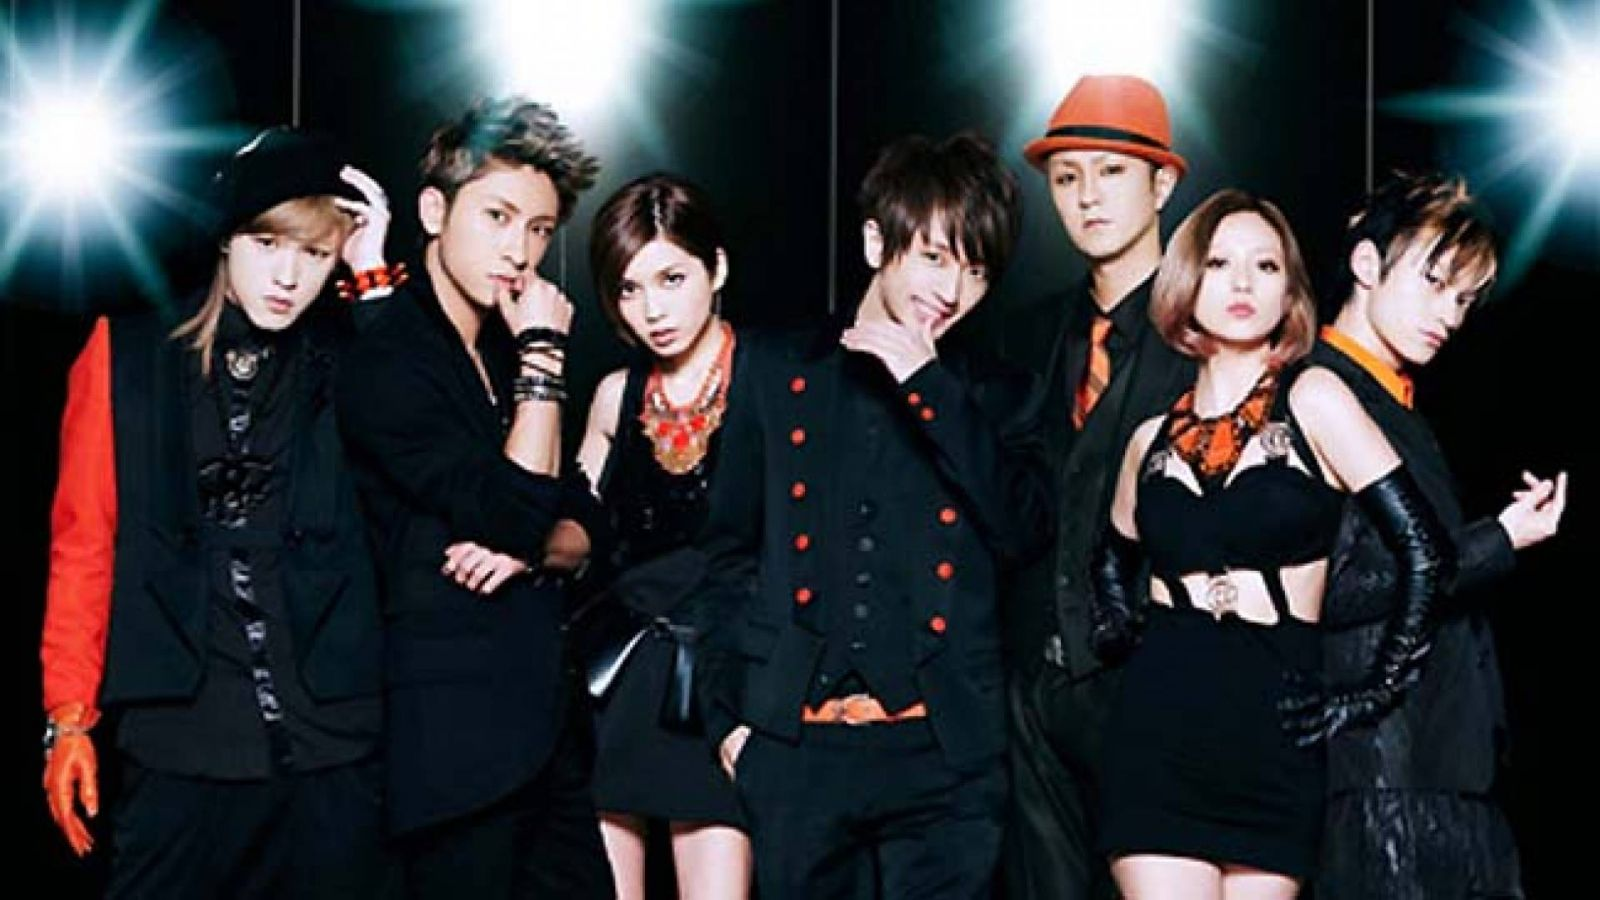 AAA © Avex Entertainment Inc. / e-talentbank